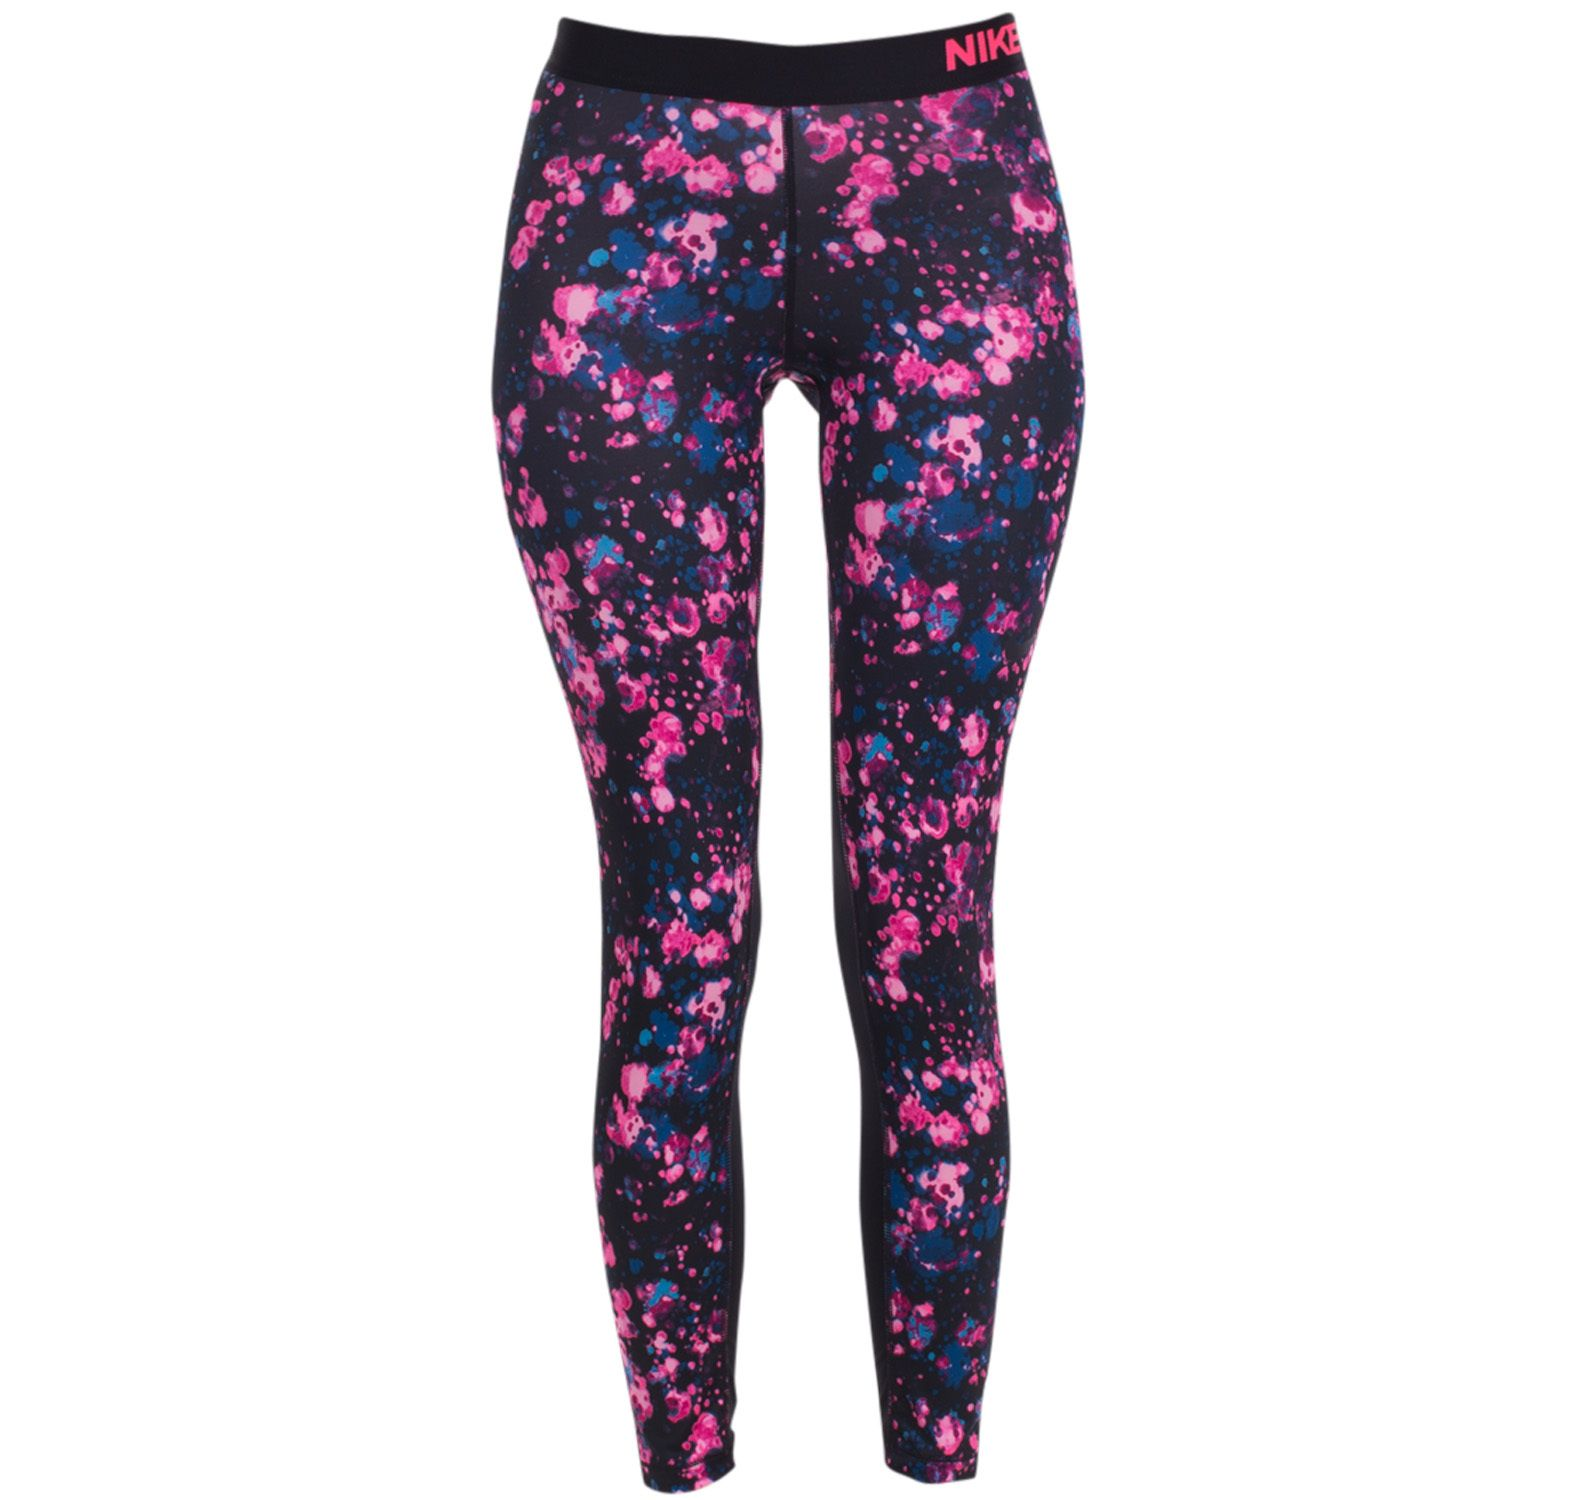 W Np Cl Tght Microcosm, Racer Pink/White, L,  Nike